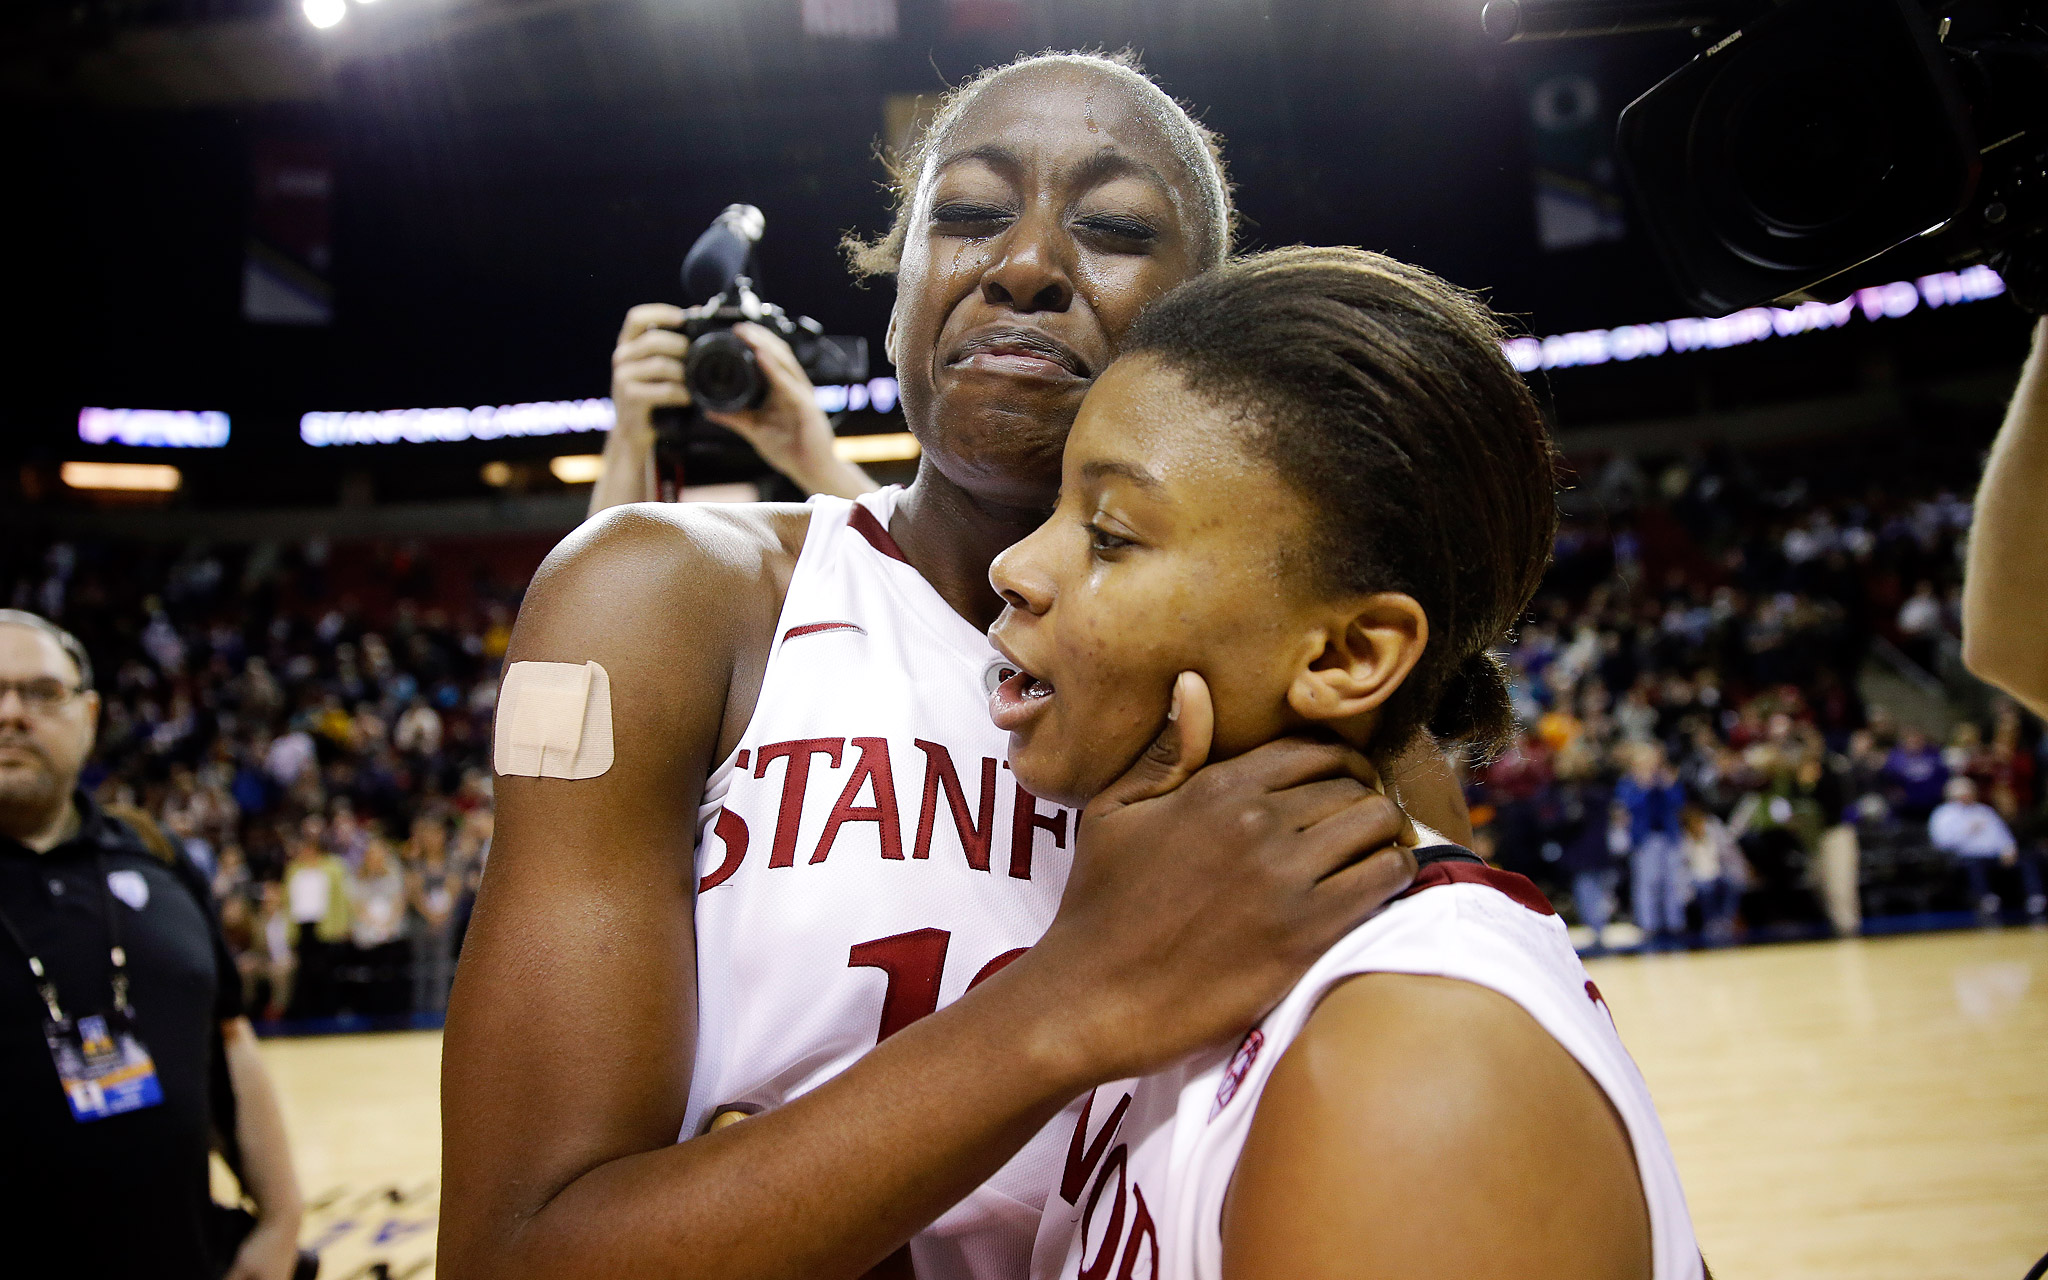 Stanford's Chiney Ogwumike